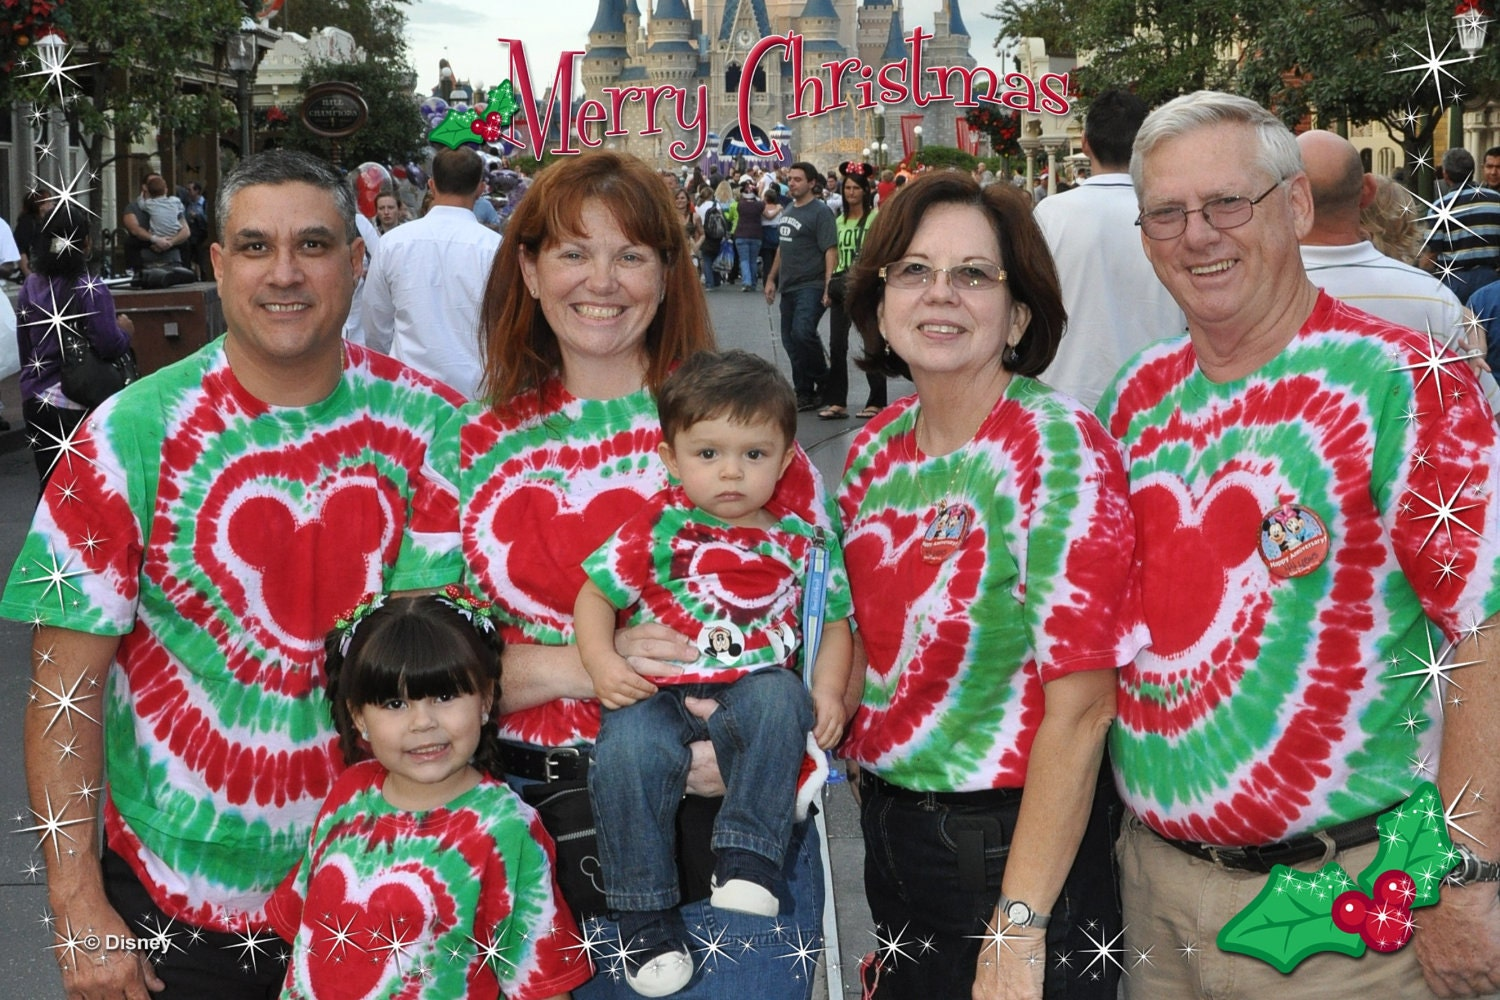 Christmas Tie Dye T Shirts For The Whole Family